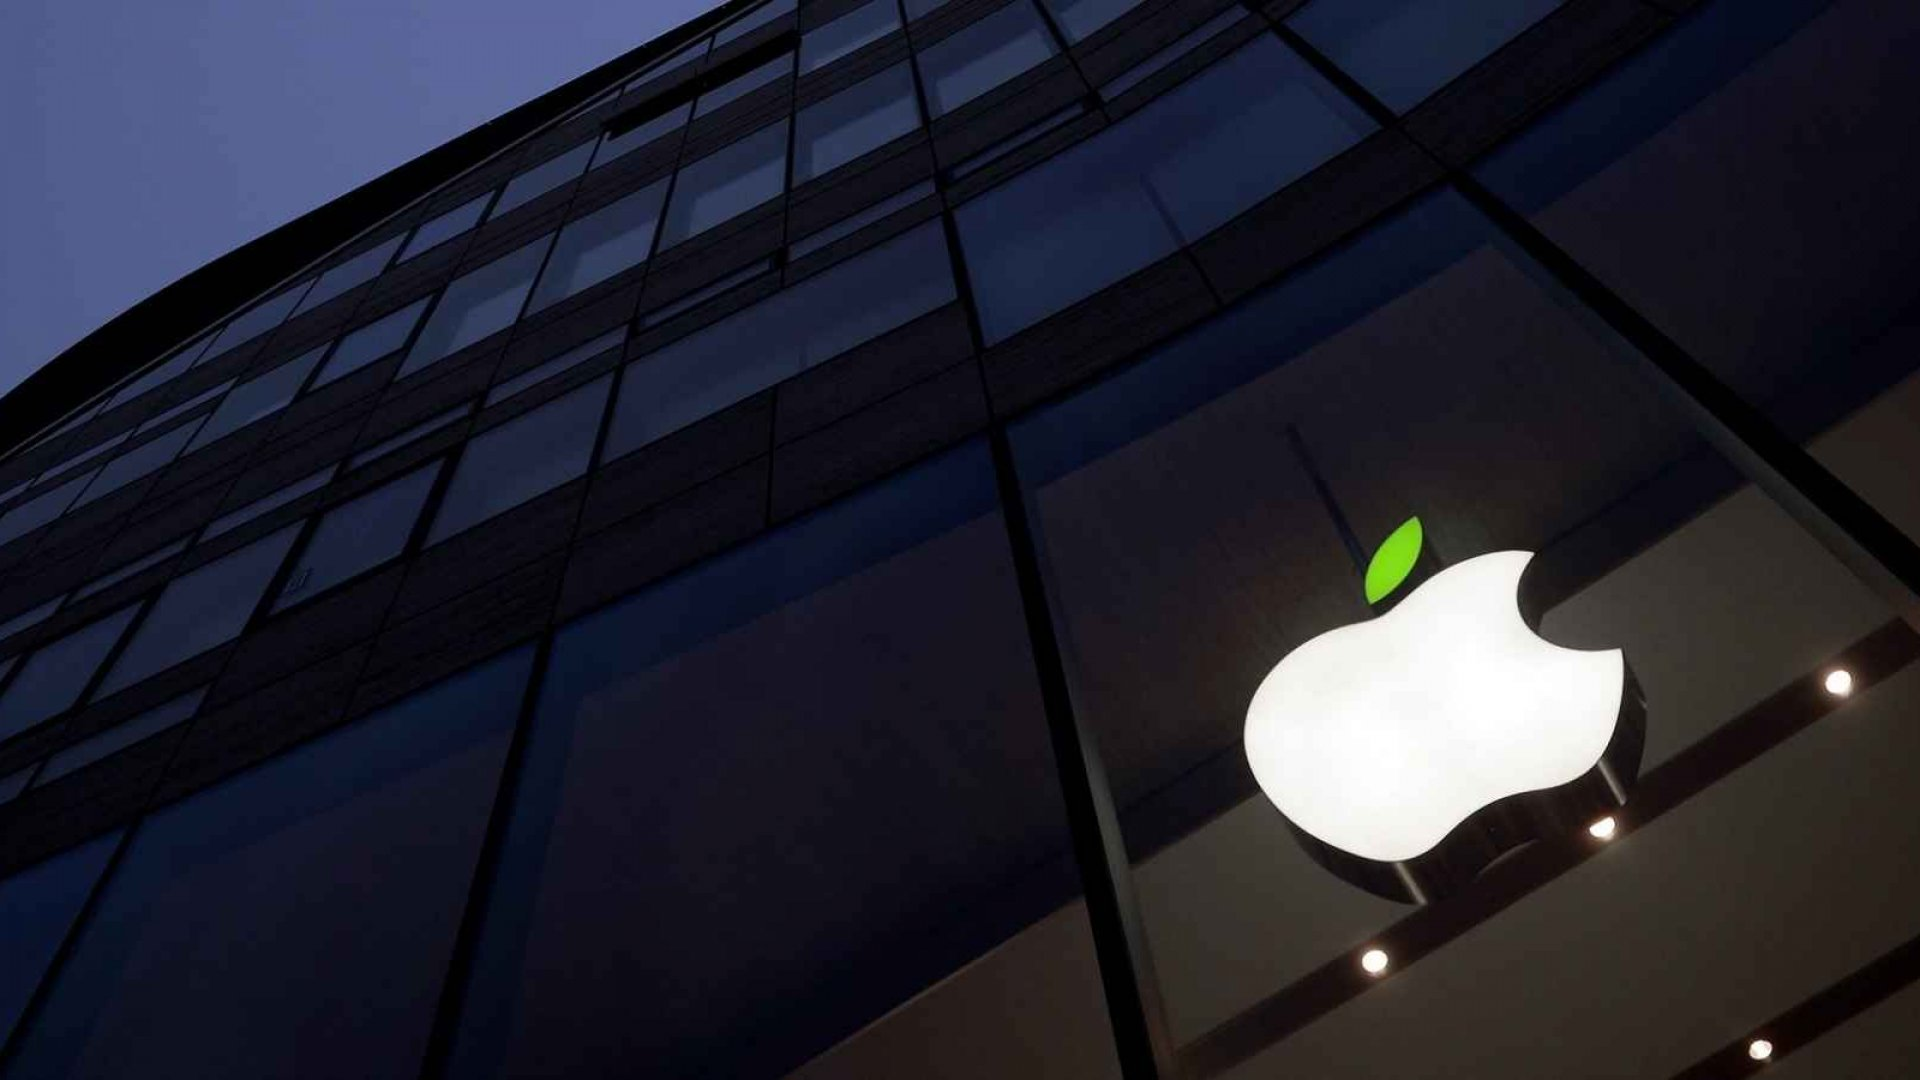 Apple's 'Planet of the Apps' Seeks Diverse Entrepreneurs, With Help From Gwyneth and Will.i.am